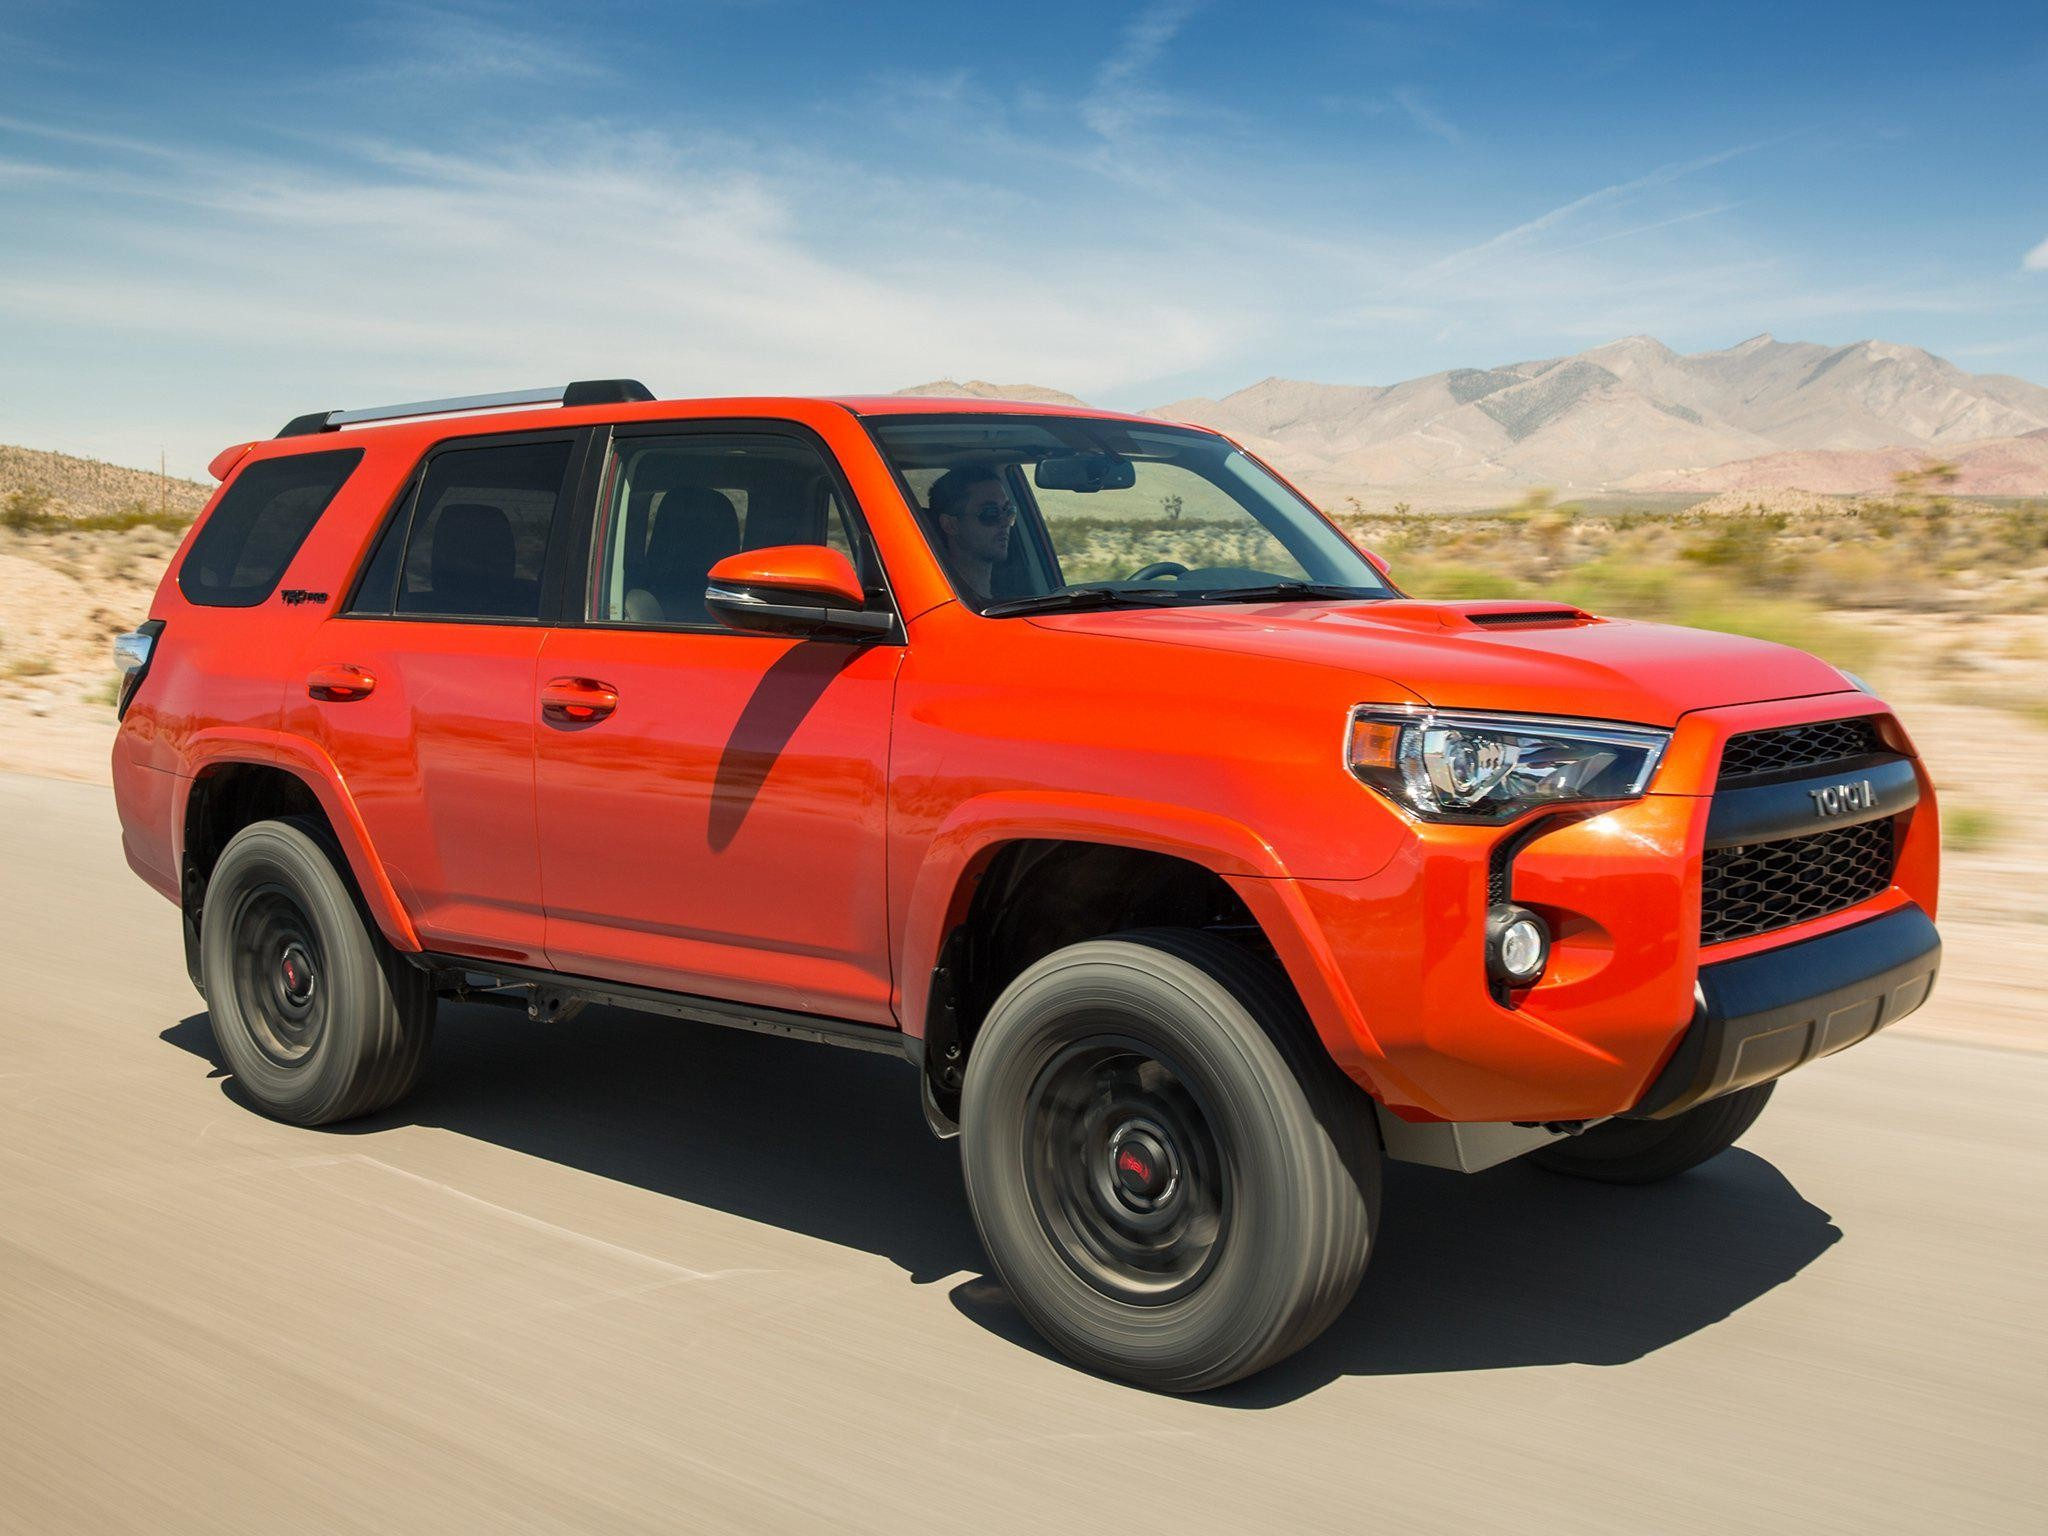 Res: 2048x1536, HD 2015 Trd Toyota 4runner Pro 4x4 Suv Desktop Backgrounds Wallpaper